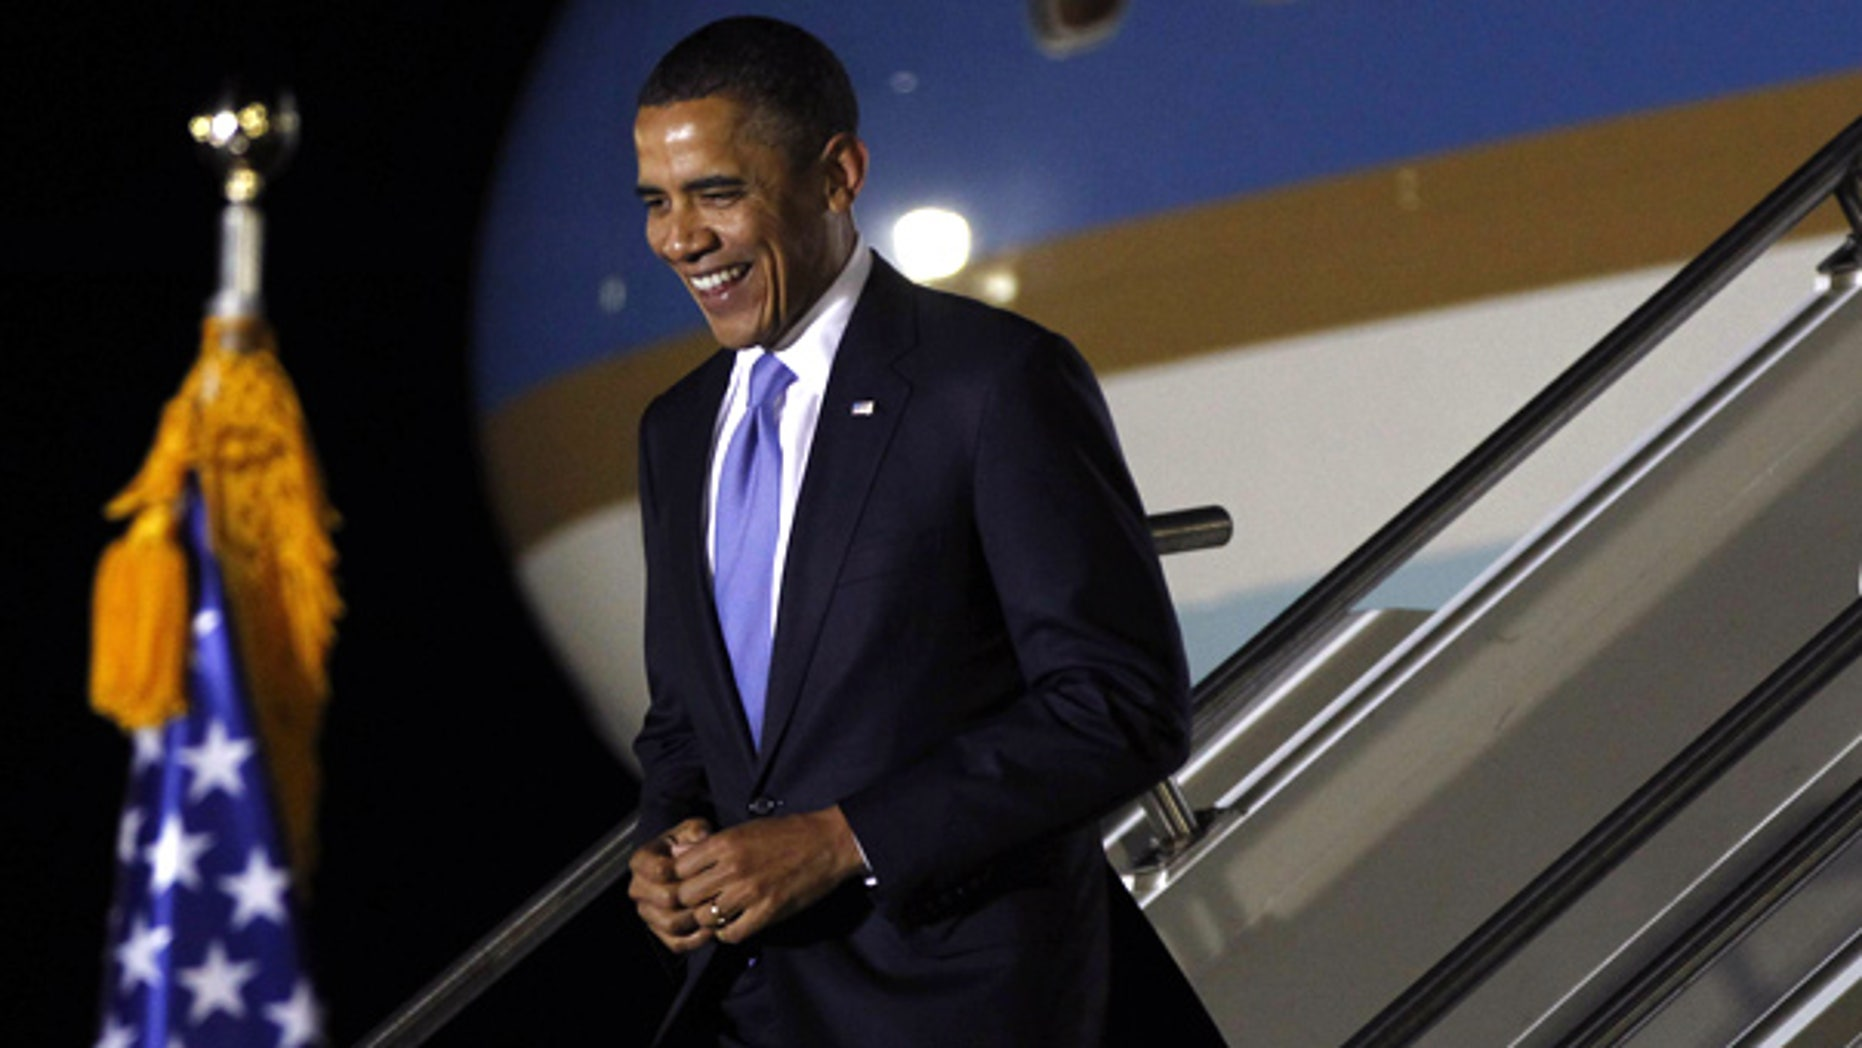 Nov. 10: President Obama arrives to attend the G-20 Summit in Seoul, South Korea.